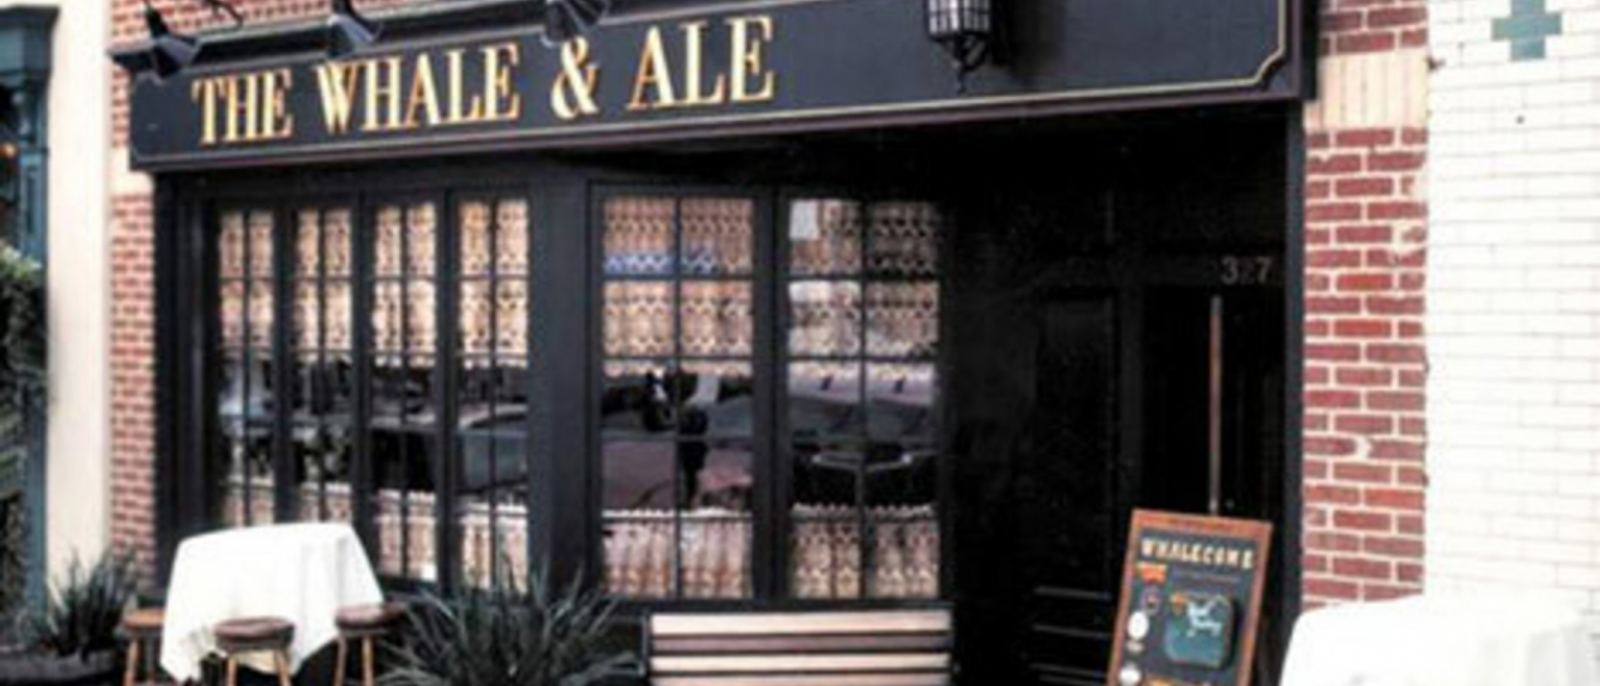 The Whale & Ale